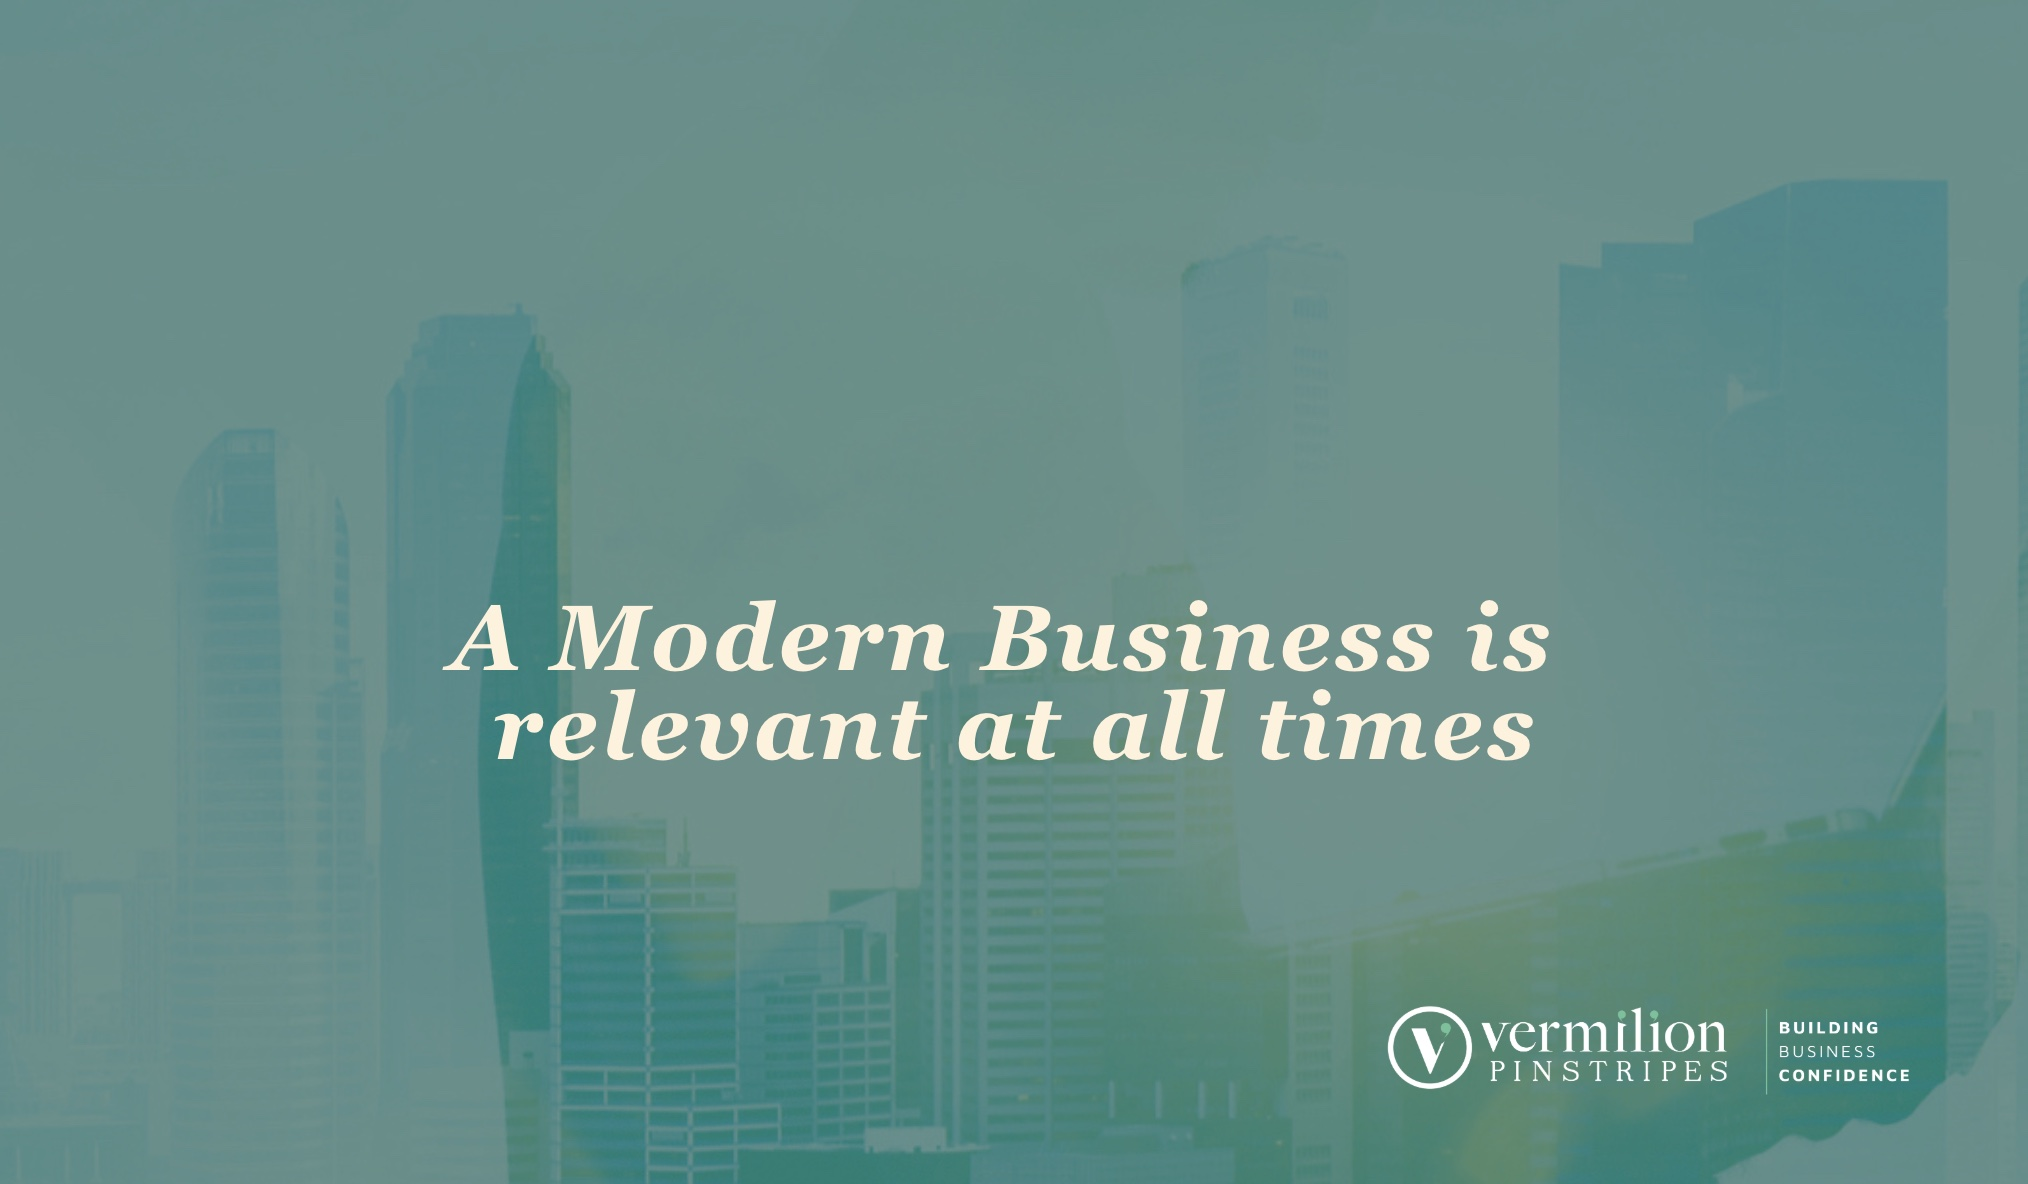 A Modern Business is relevant at all times